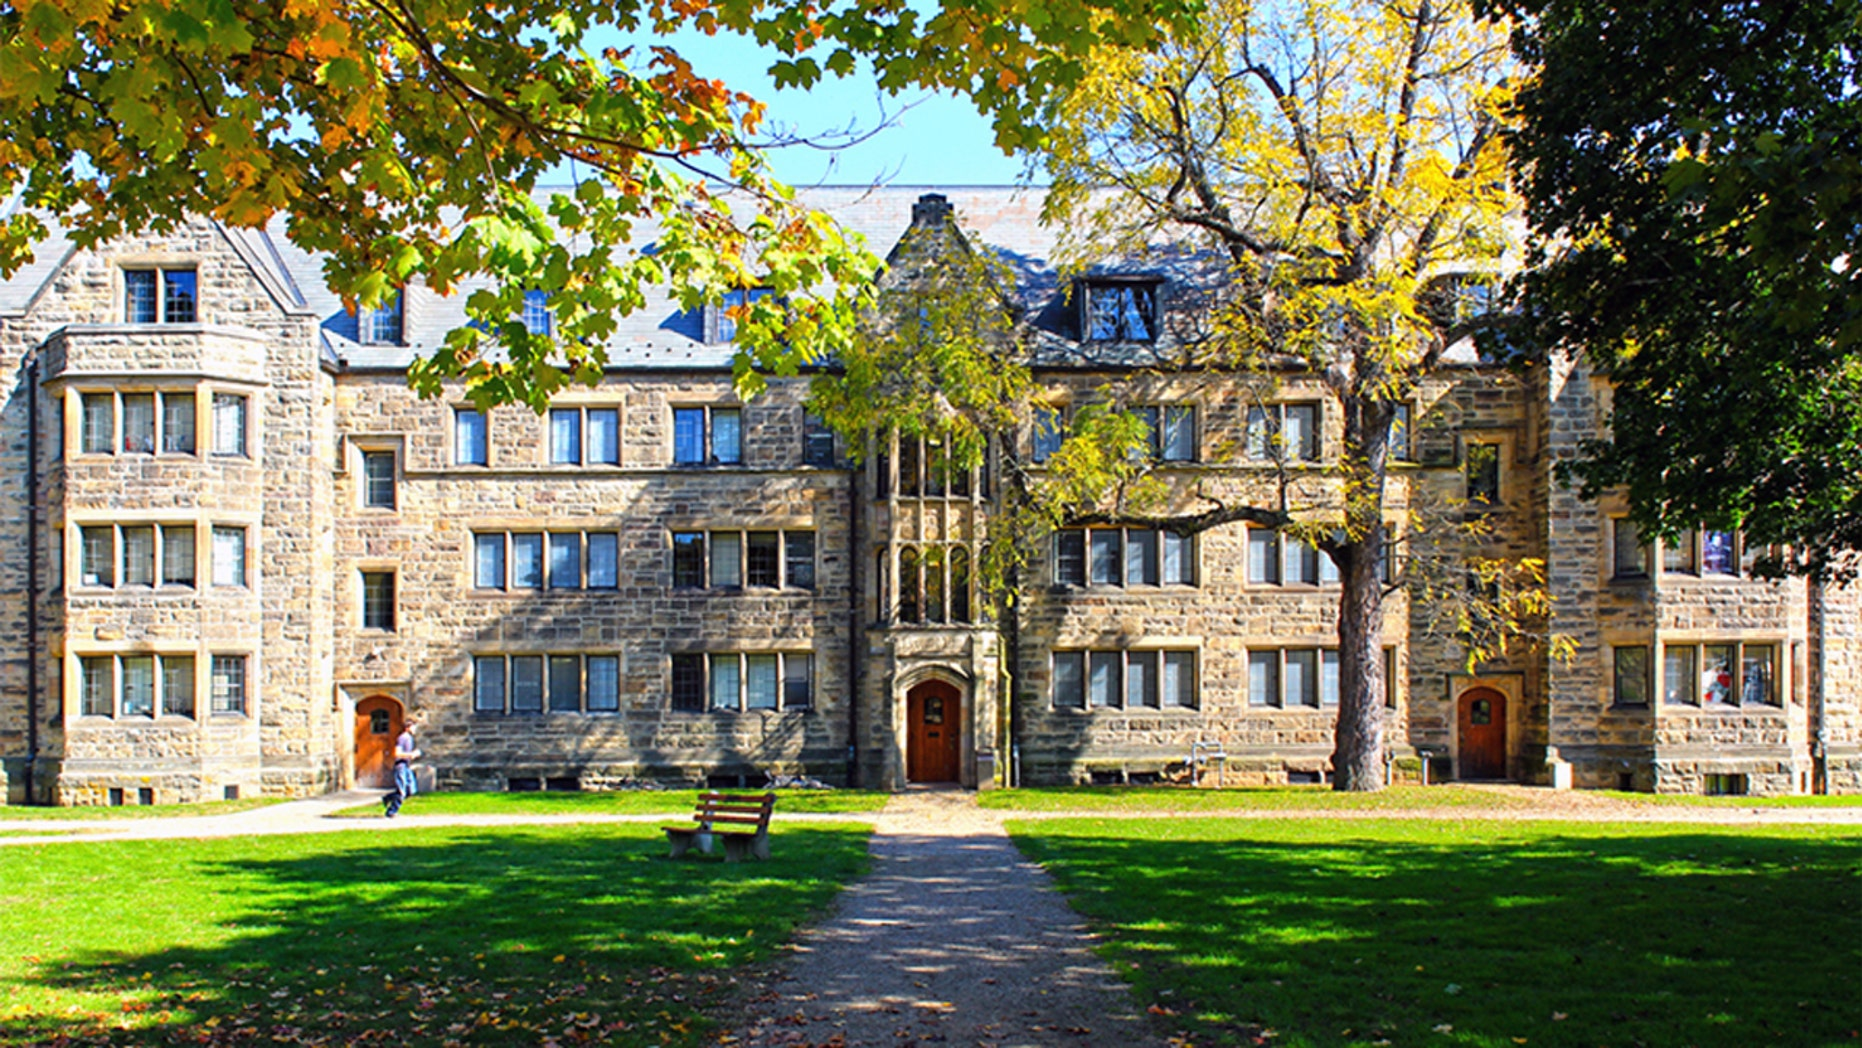 A view of Kenyon College in Gambier, Ohio.